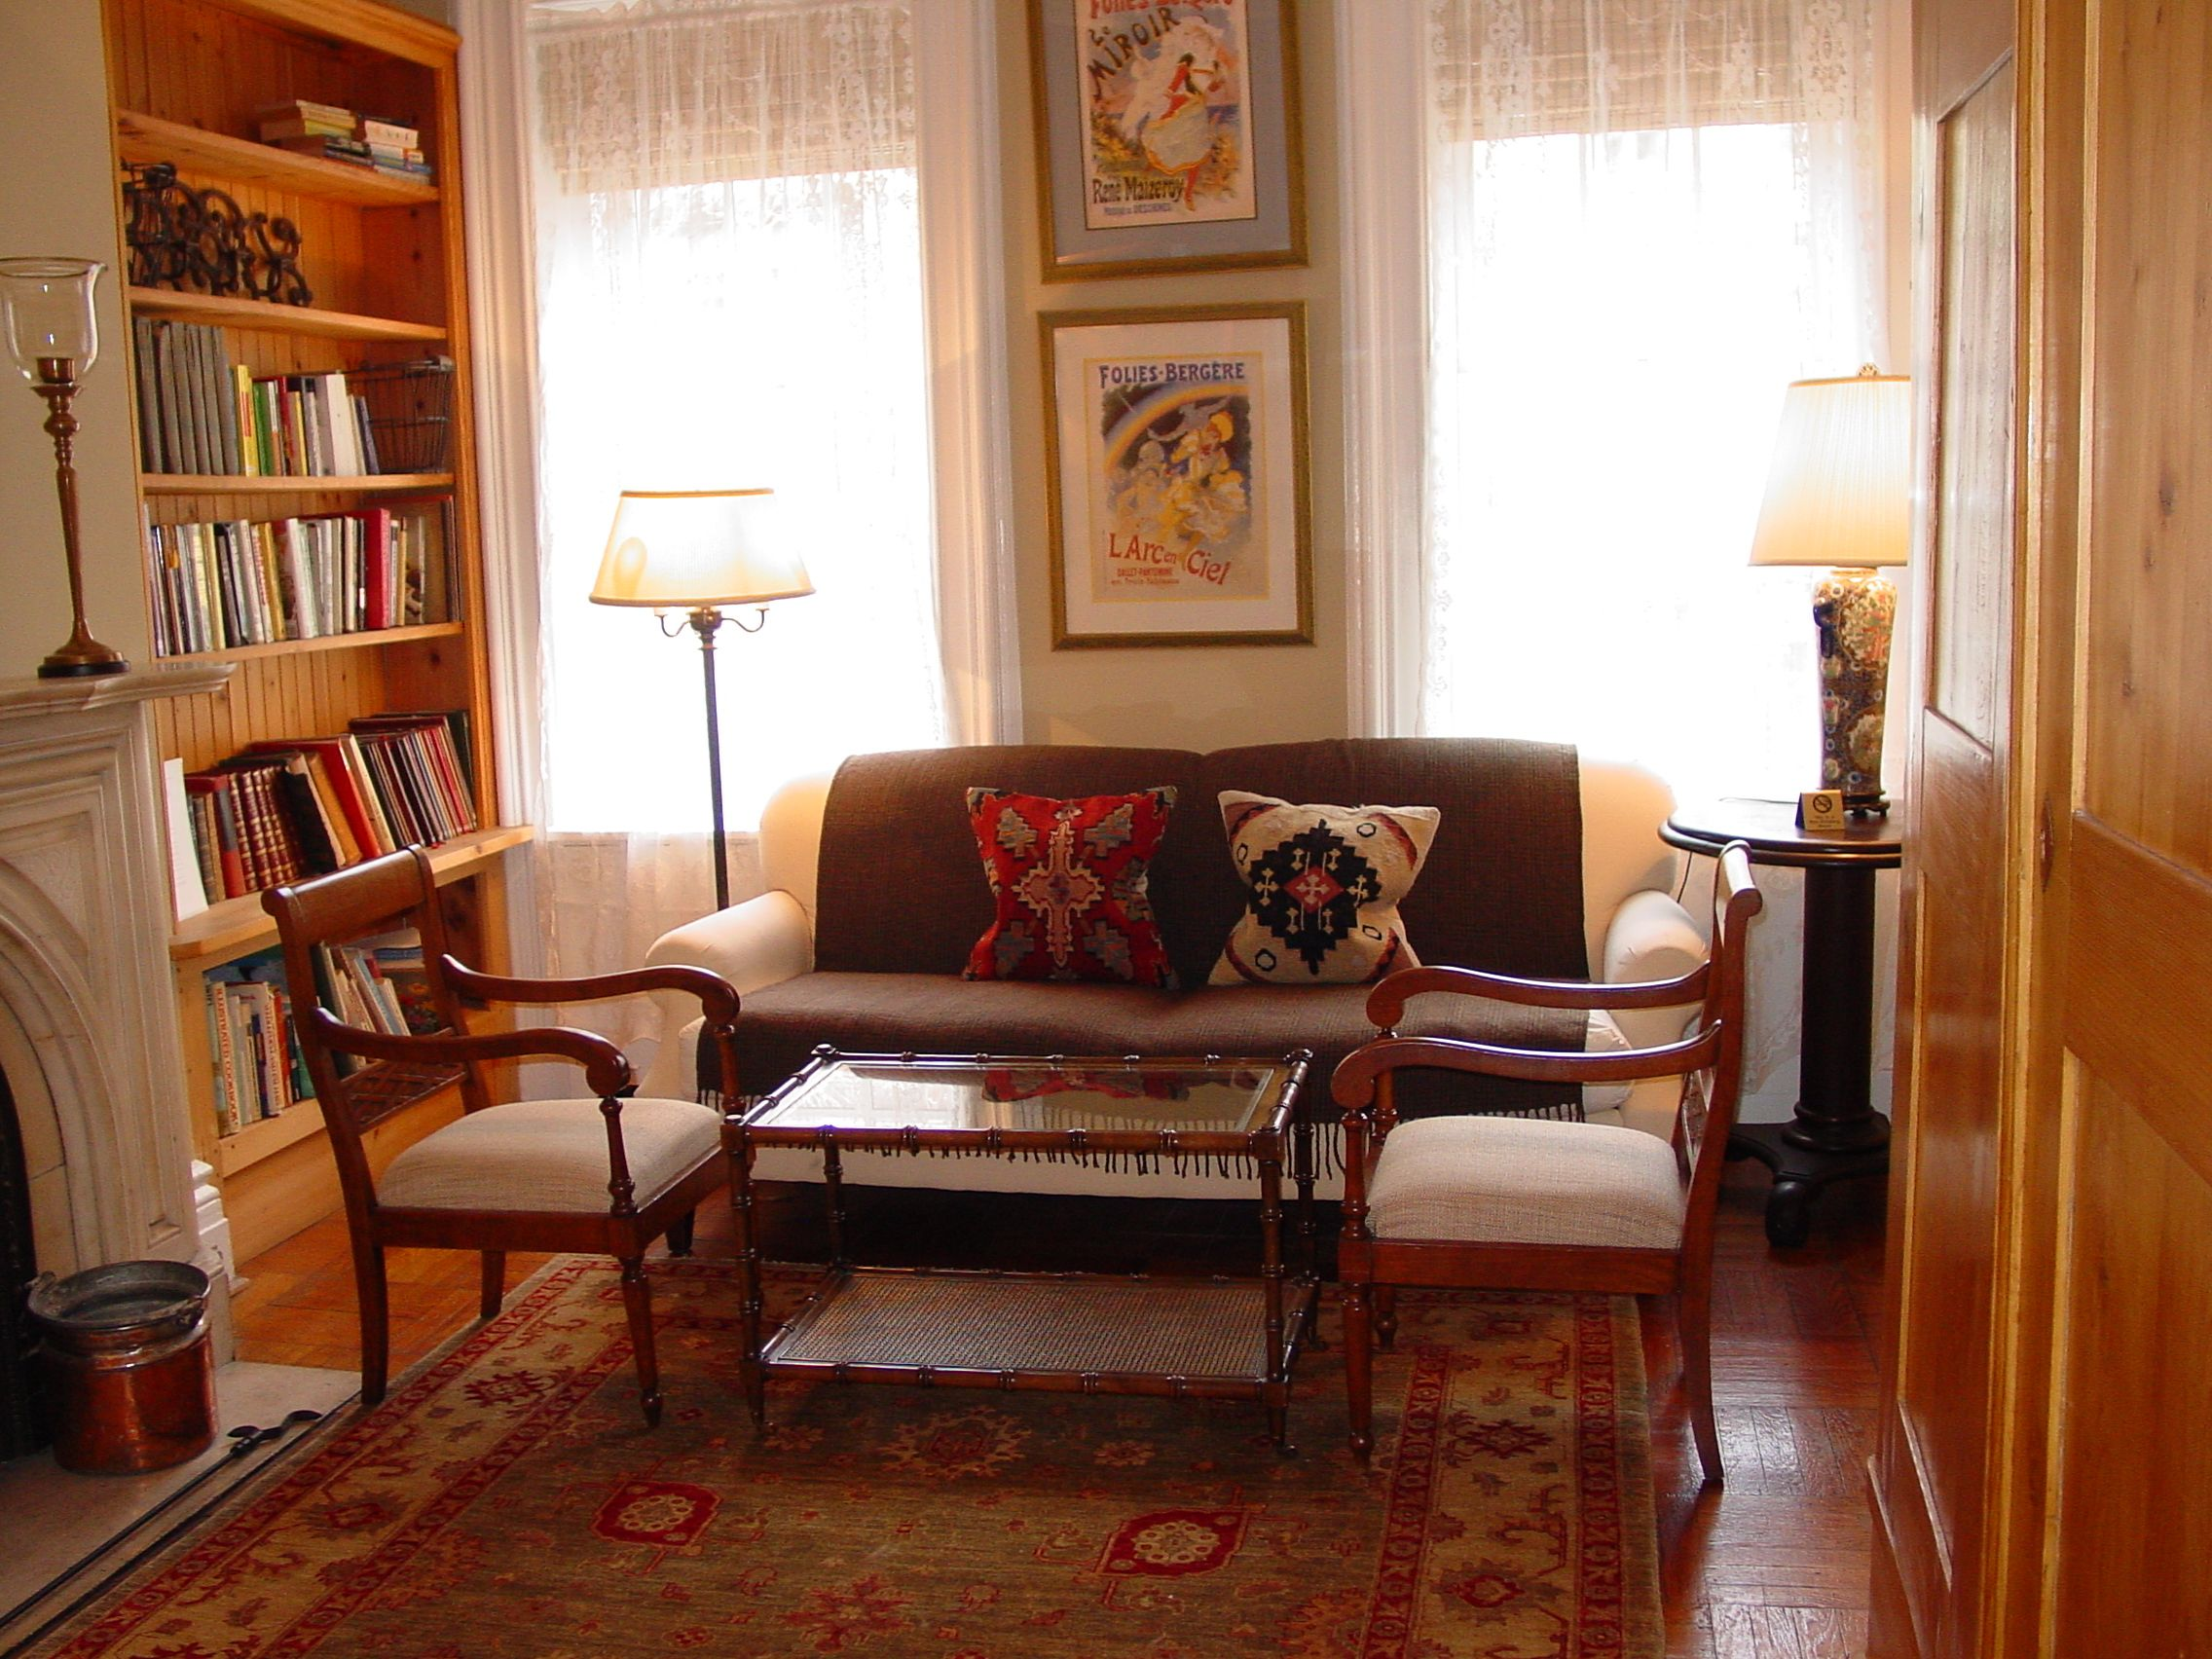 1871 House Upper East Side New York NY 10065 Home